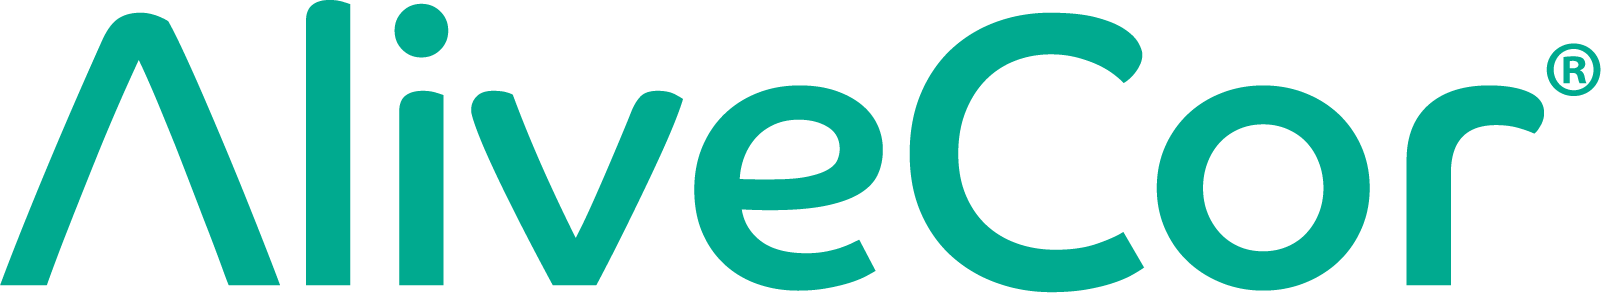 AliveCor-logo-large